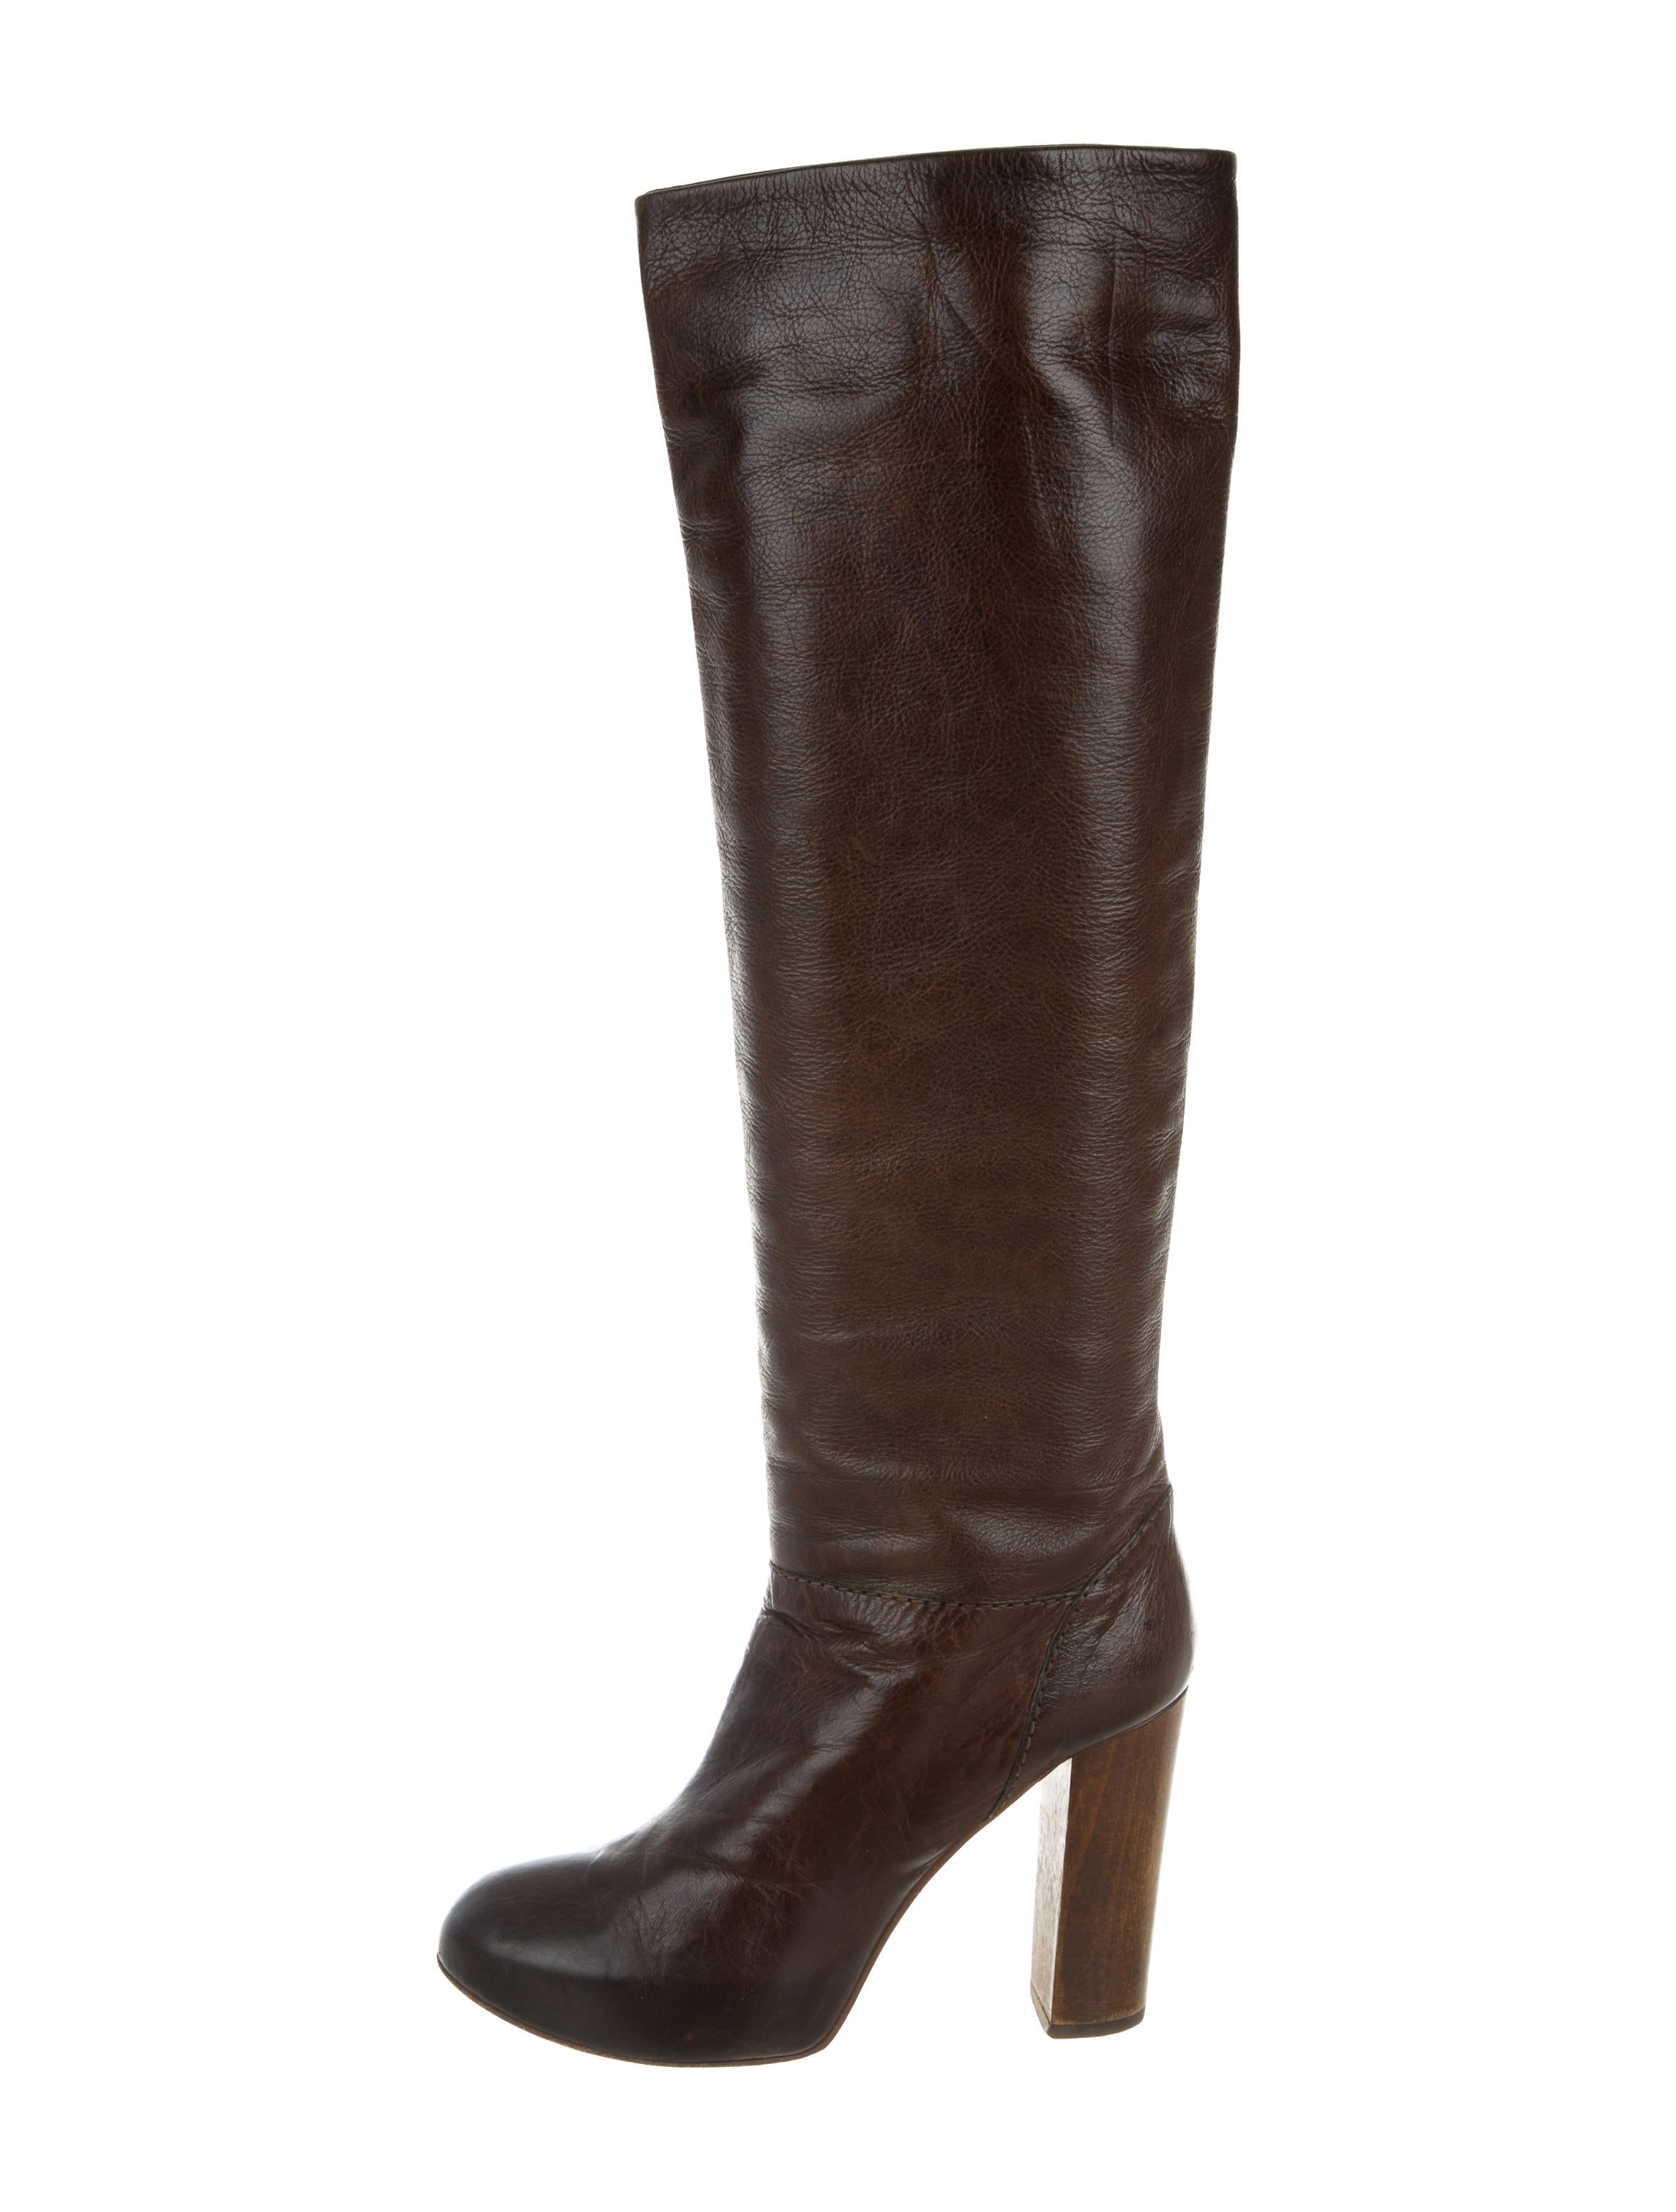 chlo 233 leather platform boots shoes chl54169 the realreal